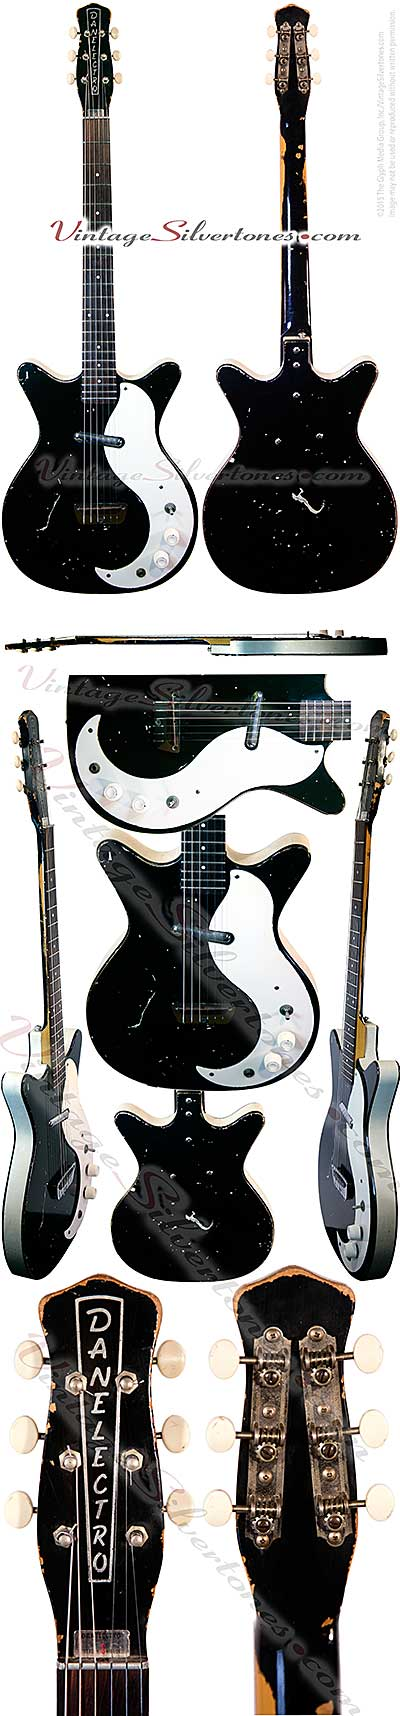 Danelectro 3011, 1 pickup electric guitar semi-solid body black finsh white pickguard, binding, made in Neptune, NJ 1960